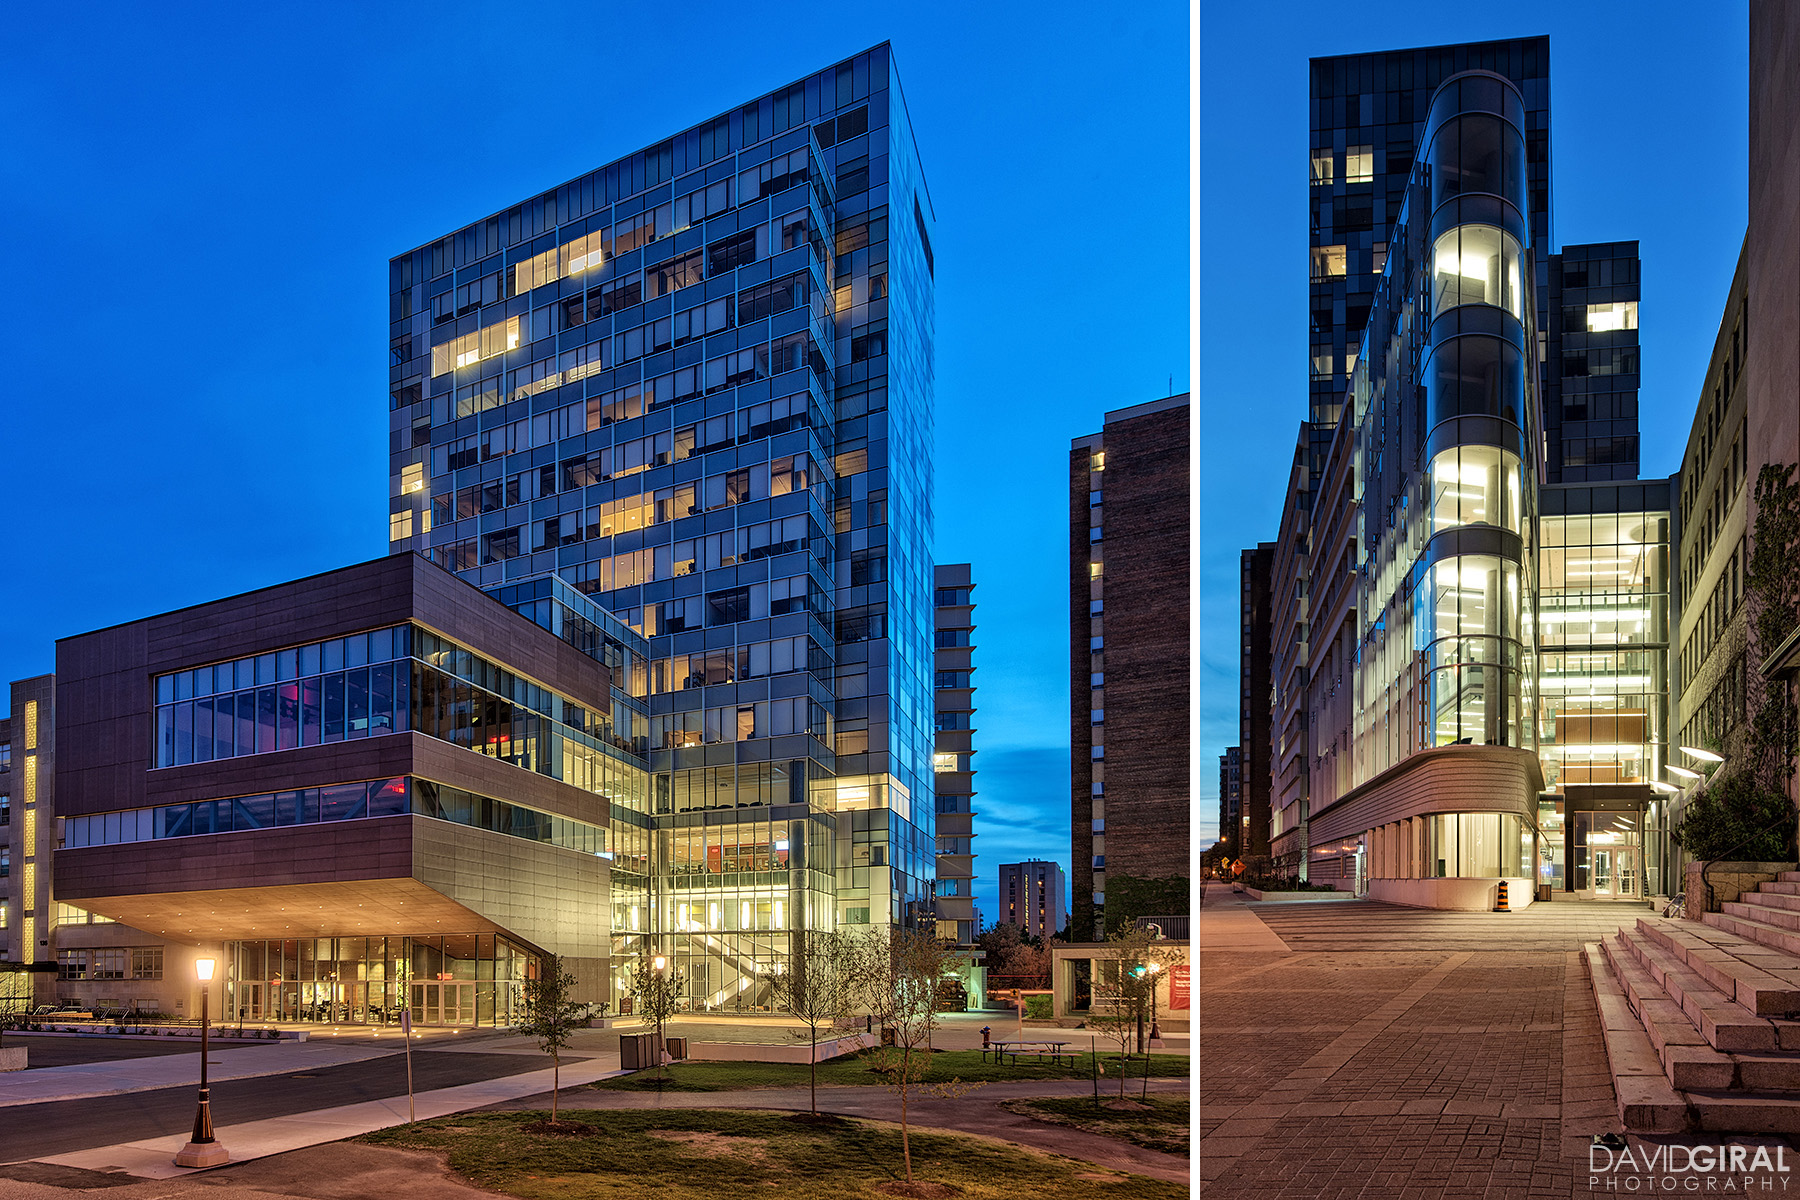 East view and South view of Faculty of Social Sciences Building at the University of Ottawa at dusk by Diamond Shmitt and KWC Architects